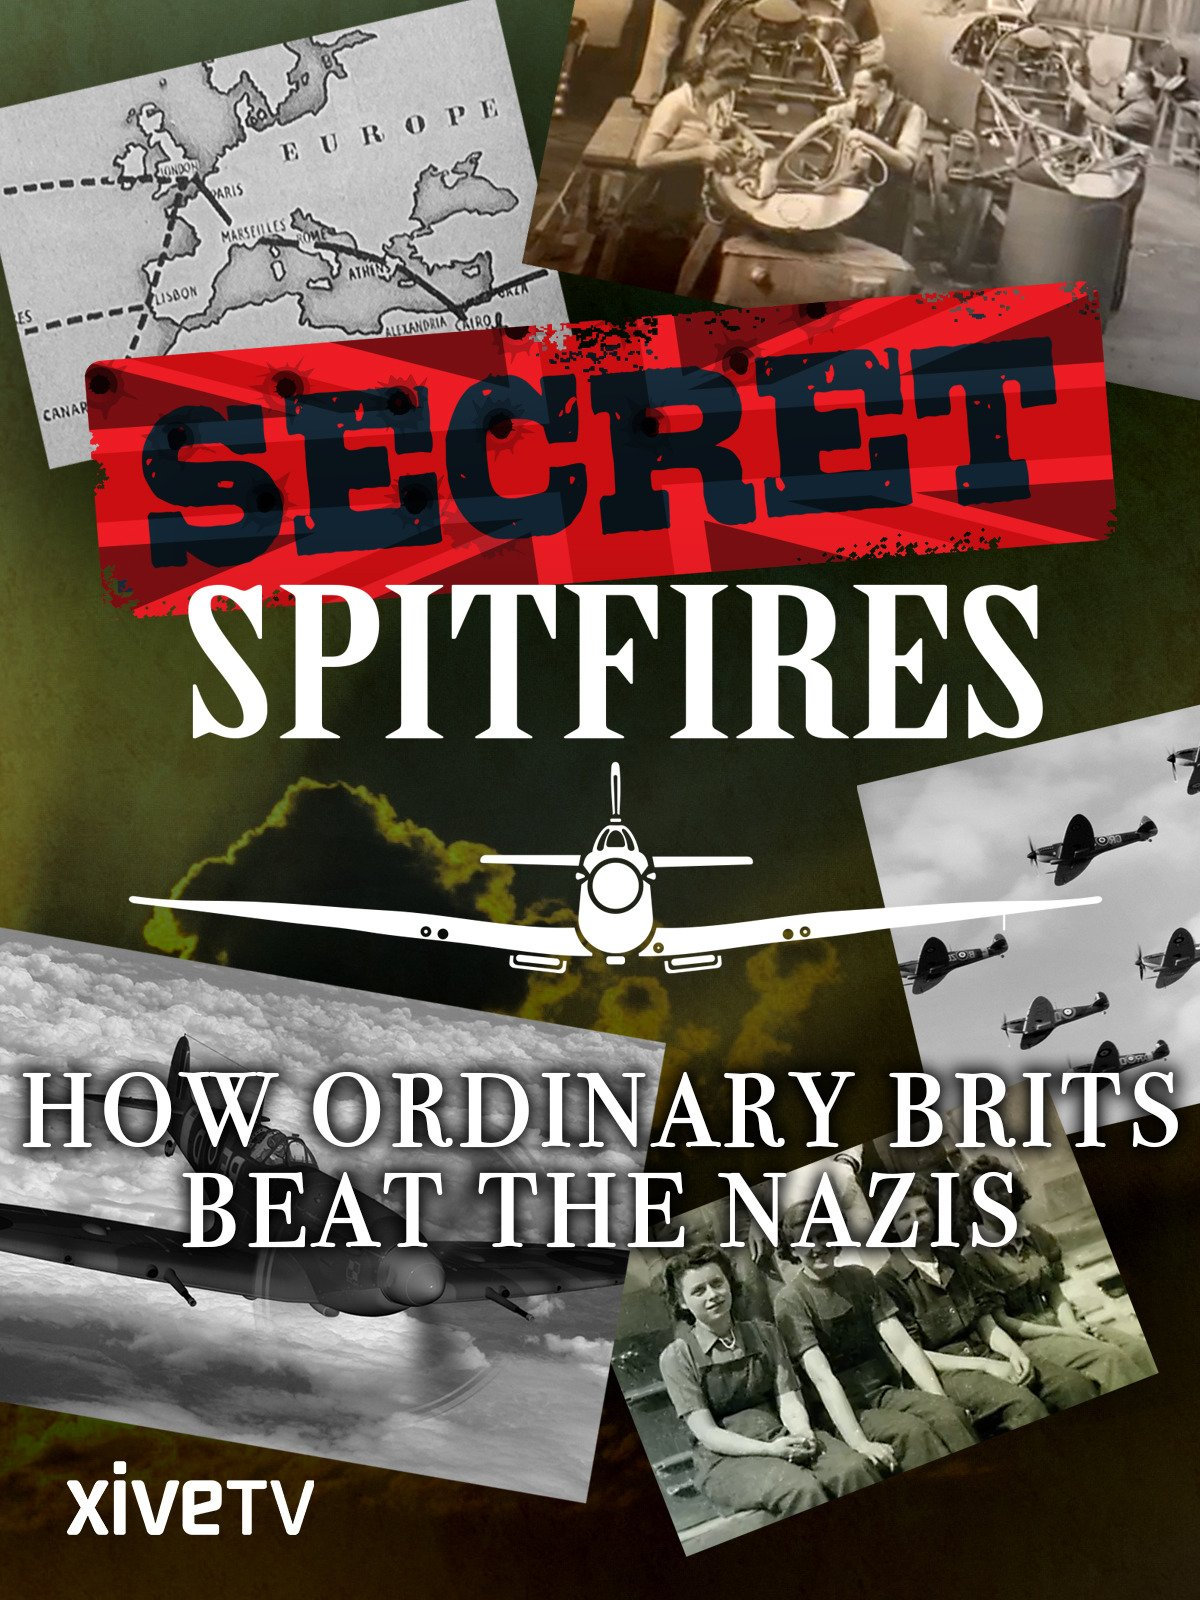 Secret Spitfires: How Ordinary Brits Beat the Nazis